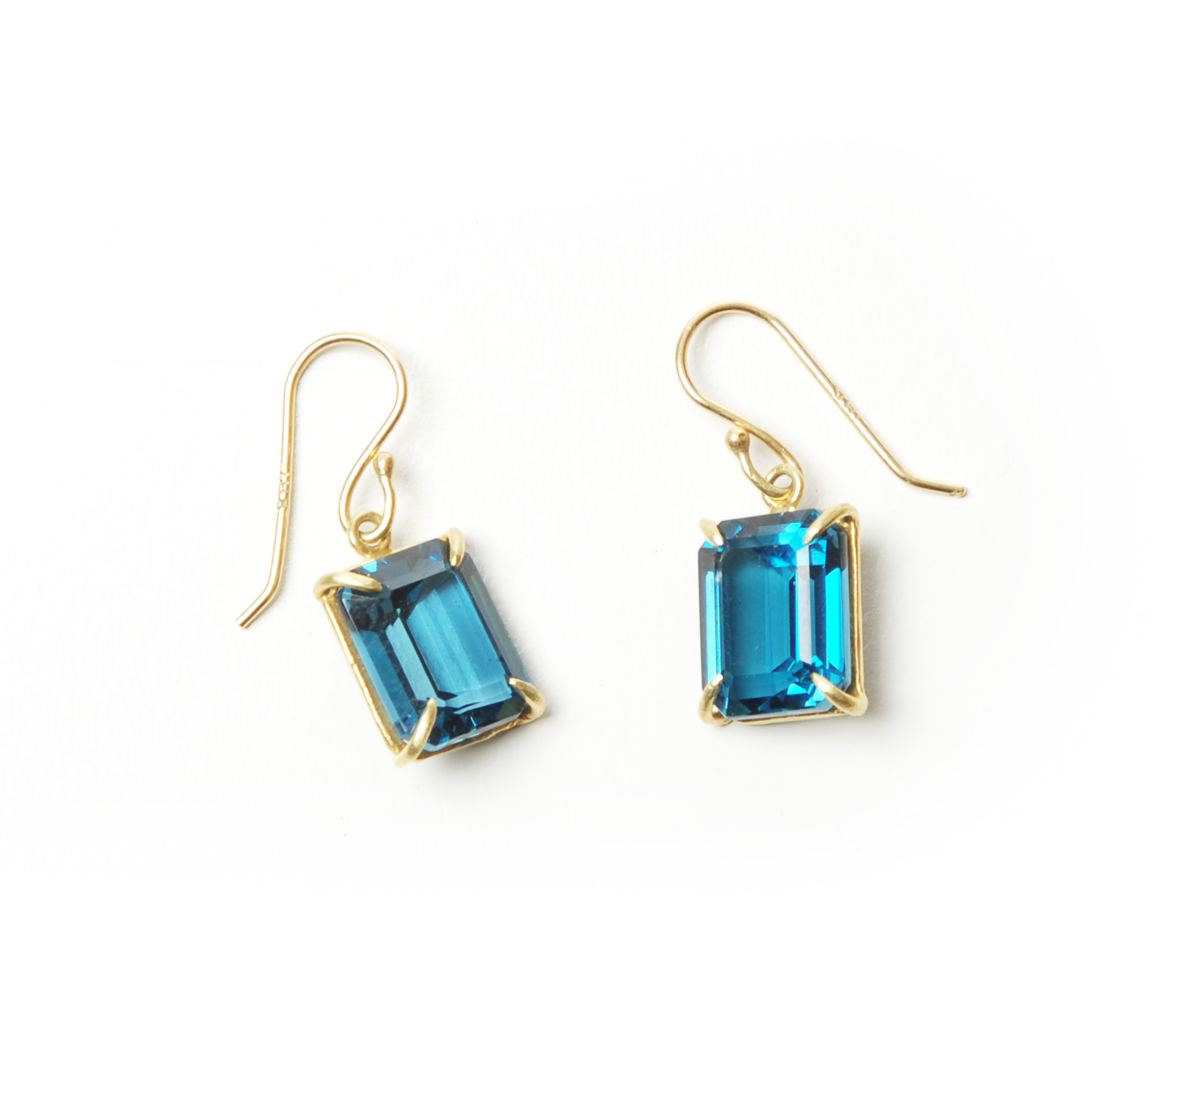 Rosanne Pugliese 18K Emerald Cut Faceted London Blue Topaz Earrings